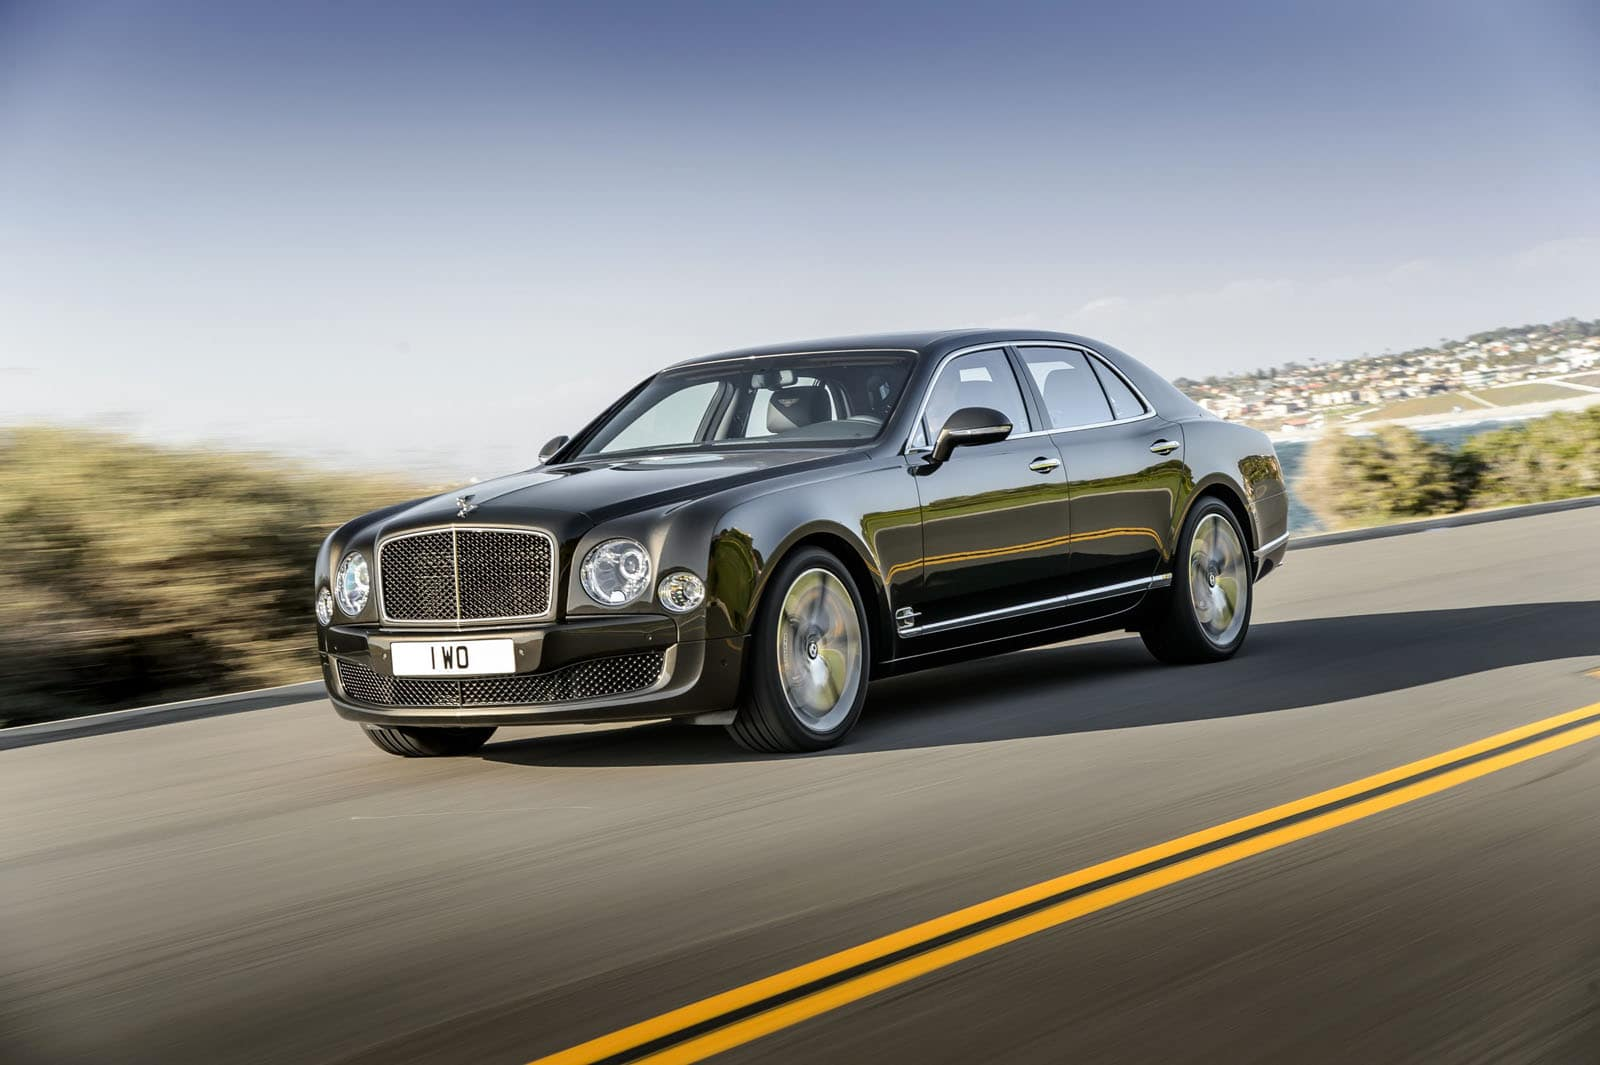 Une Mulsanne Speed de 537 ch chez Bentley en 2015